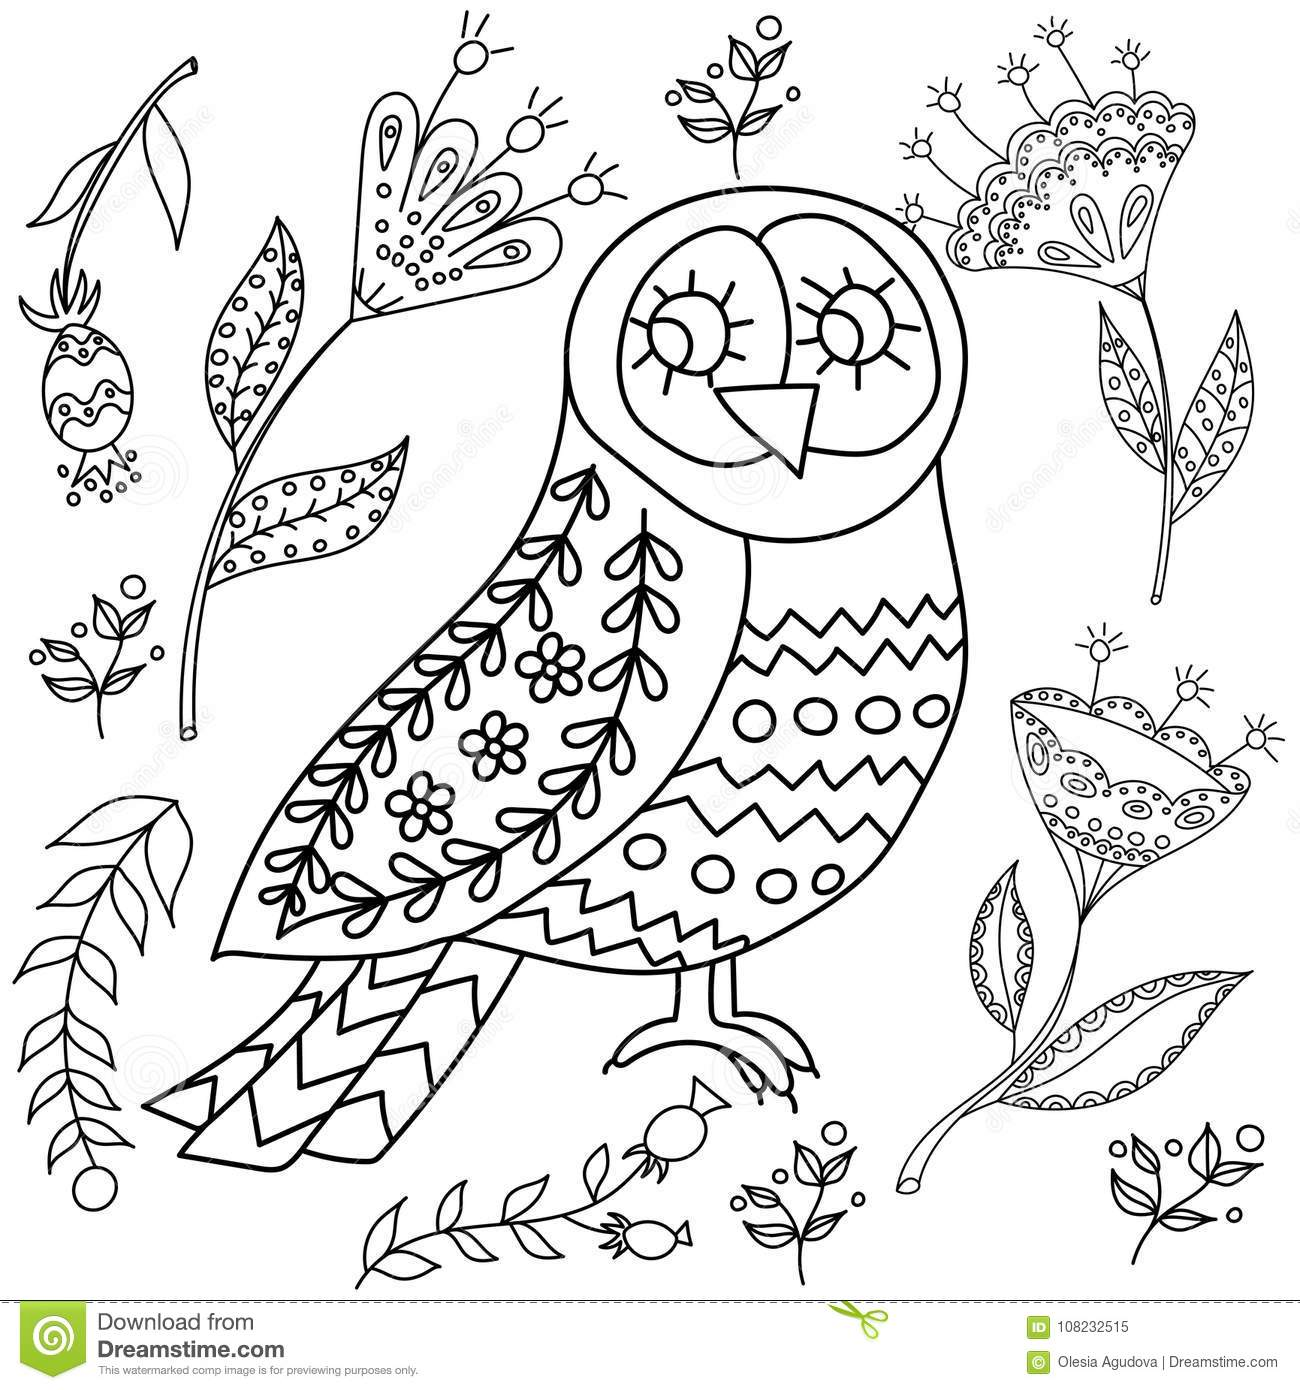 Coloring Book Fol Adults Folk Set Vector Blask And Whit Illustration With Beautiful Birds Flowers Scandinavian